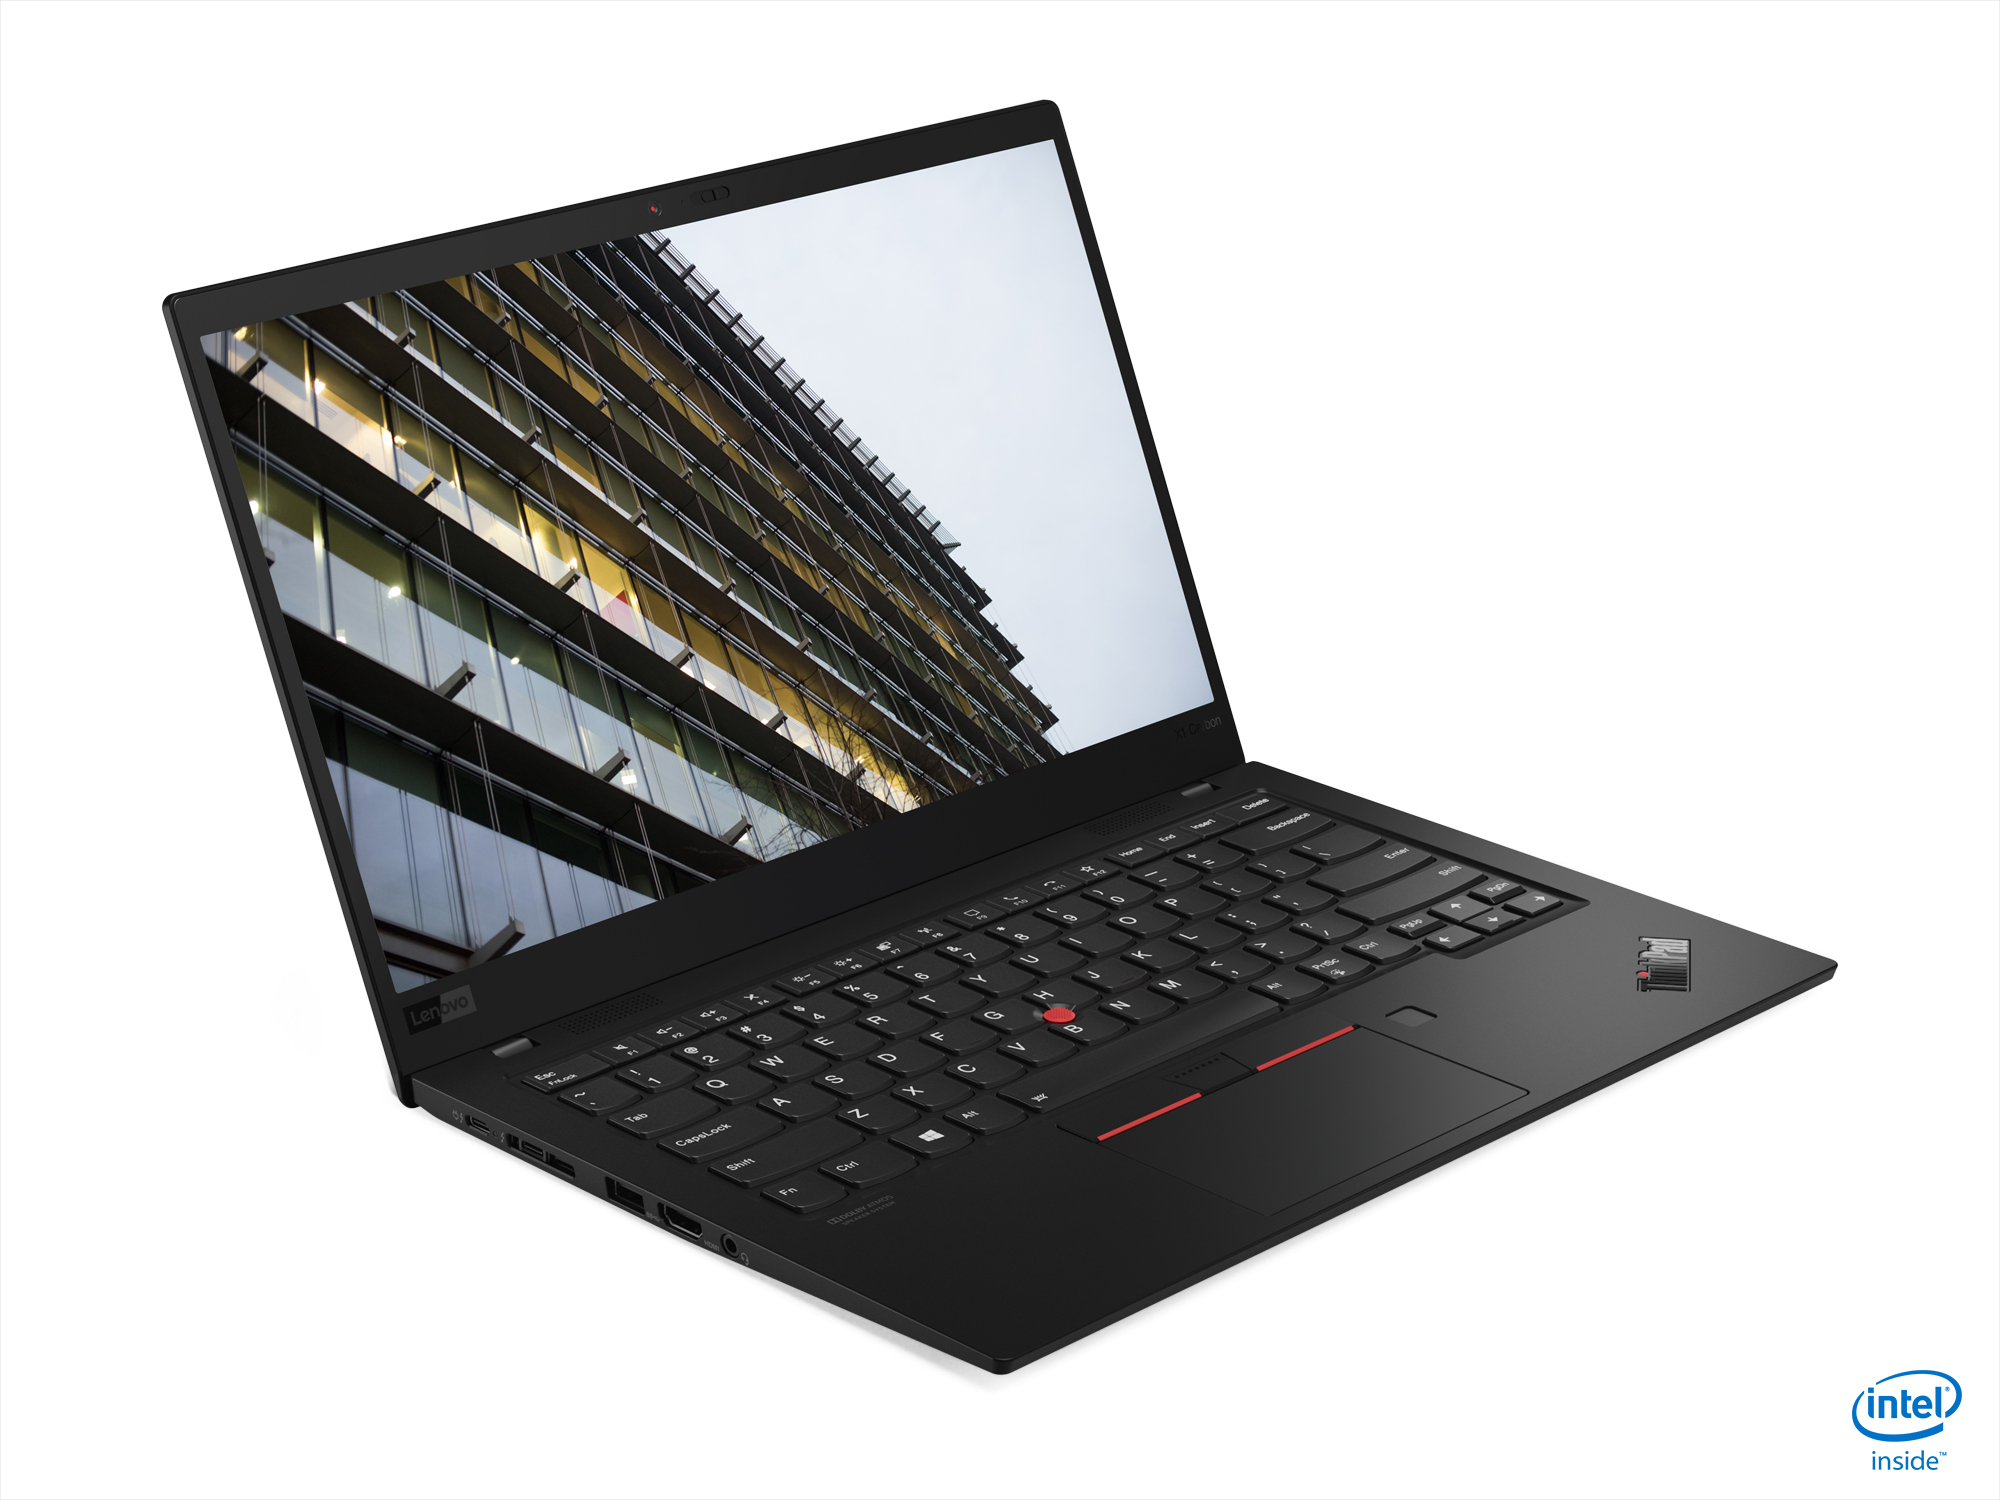 2_Lenovo ThinkPad X1 Carbon第8代售價自NT$50,500元起